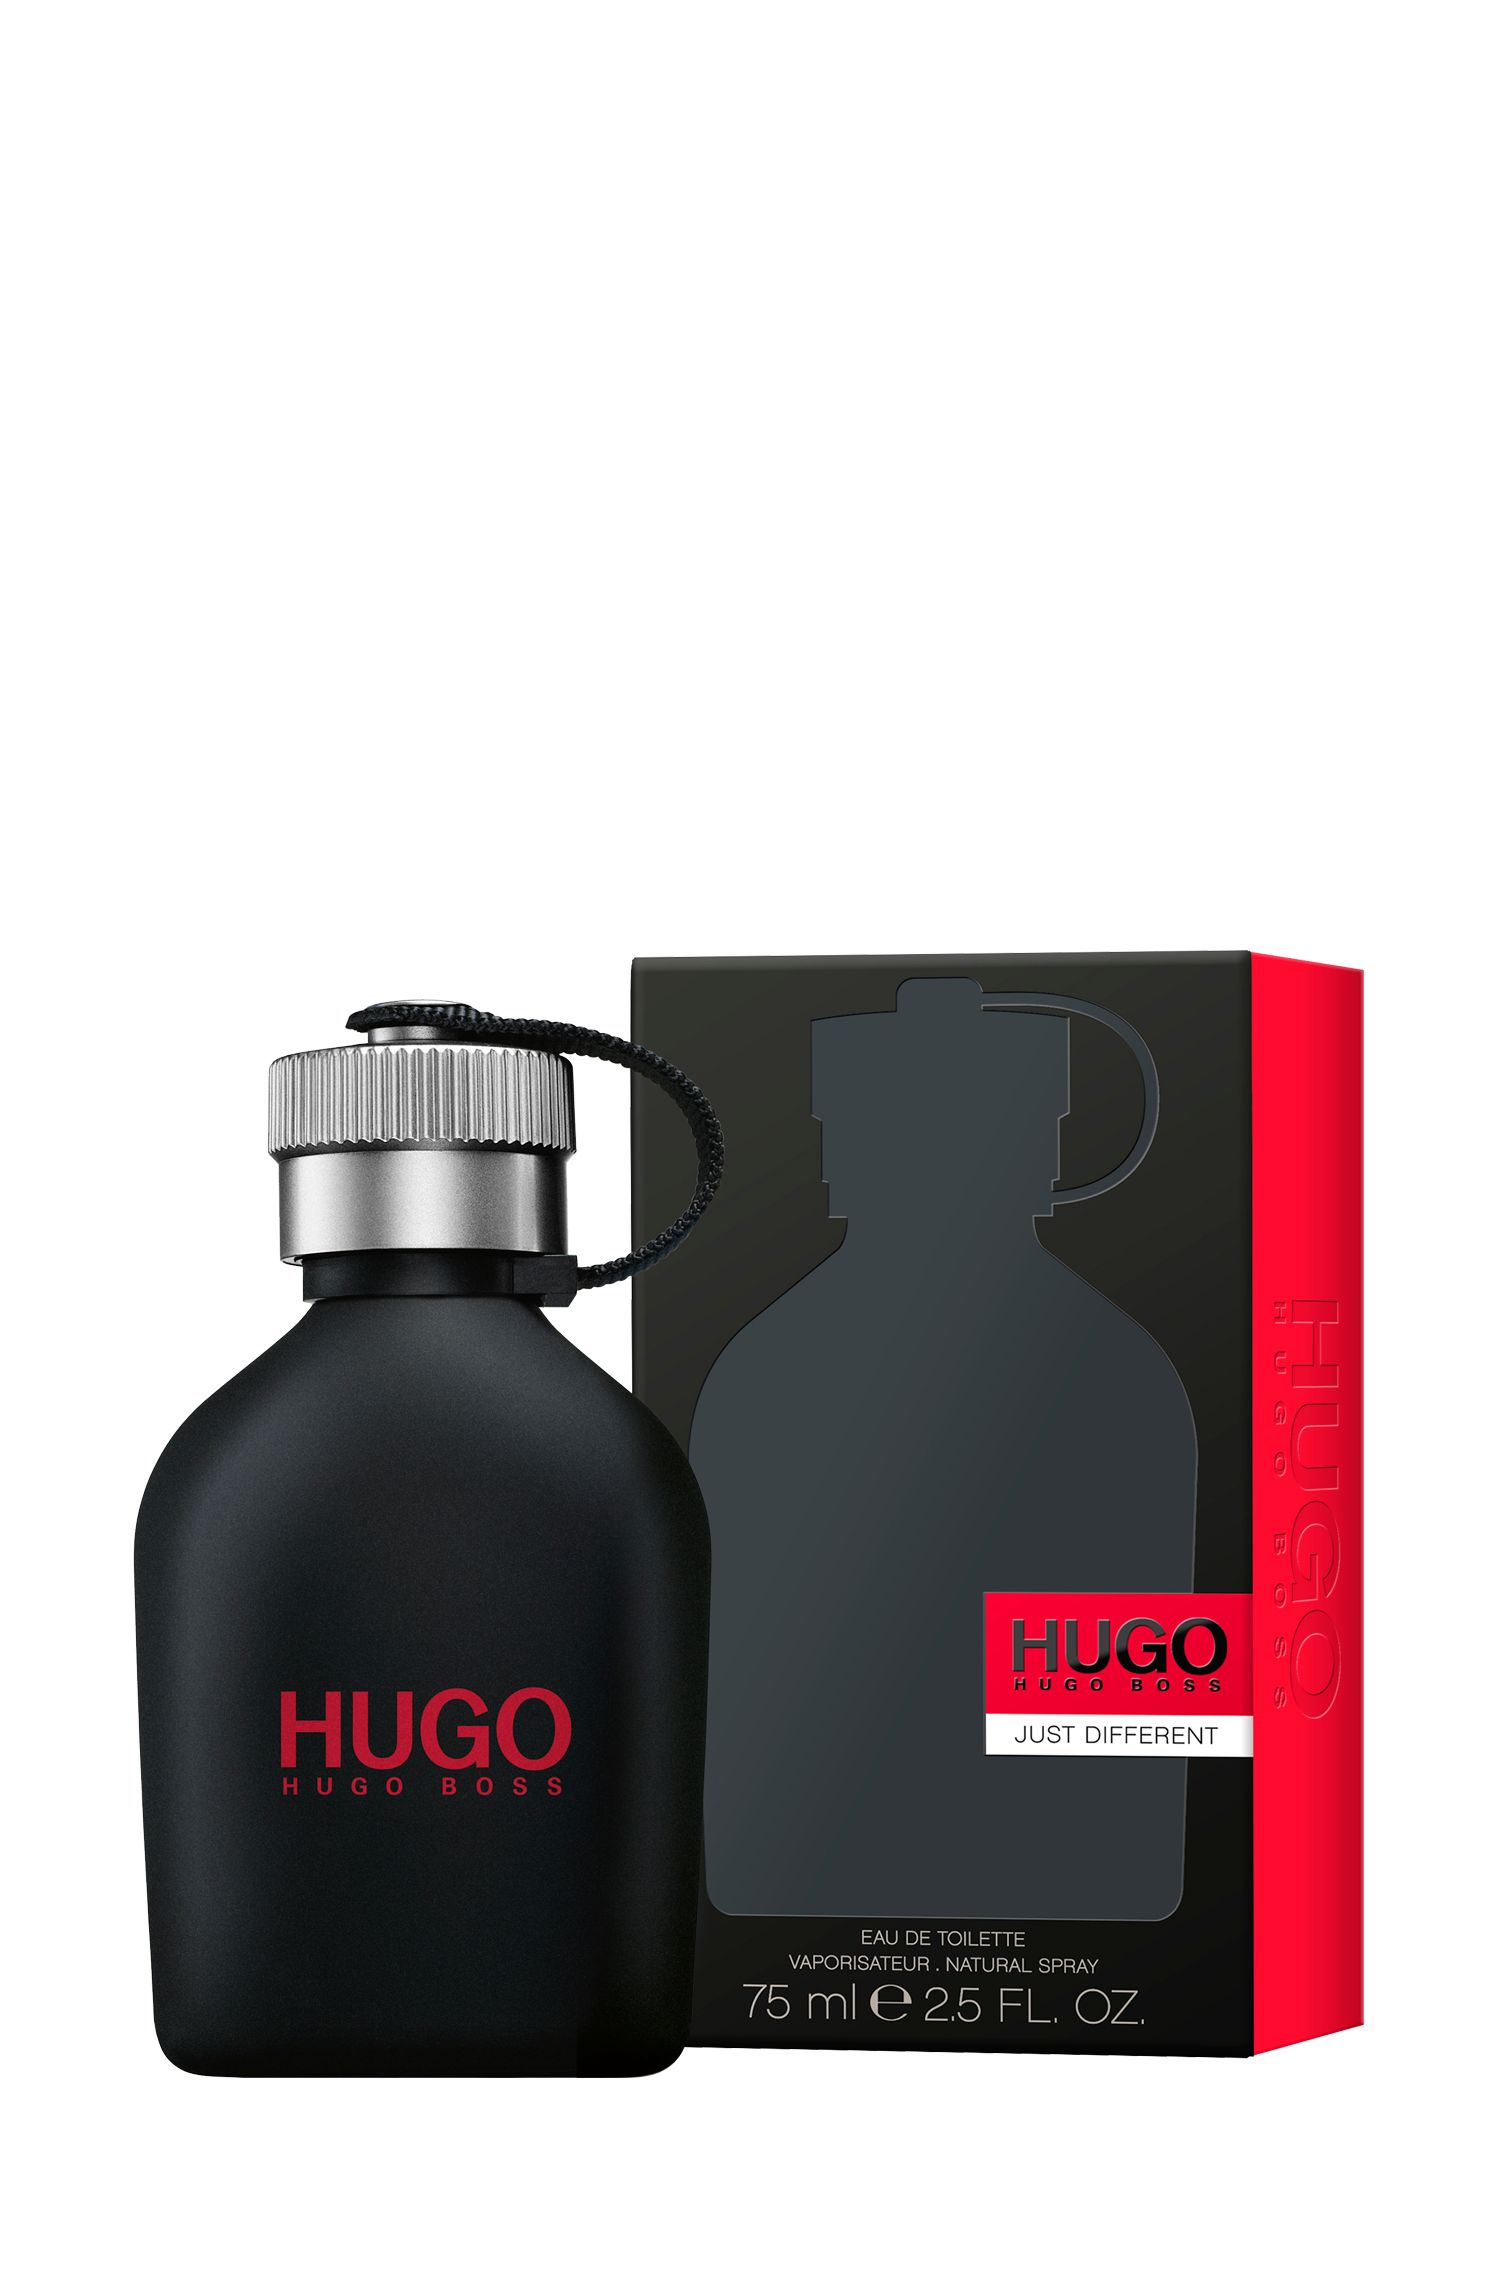 Eau de Toilette HUGO Just Different, 75 ml, Assorted-Pre-Pack